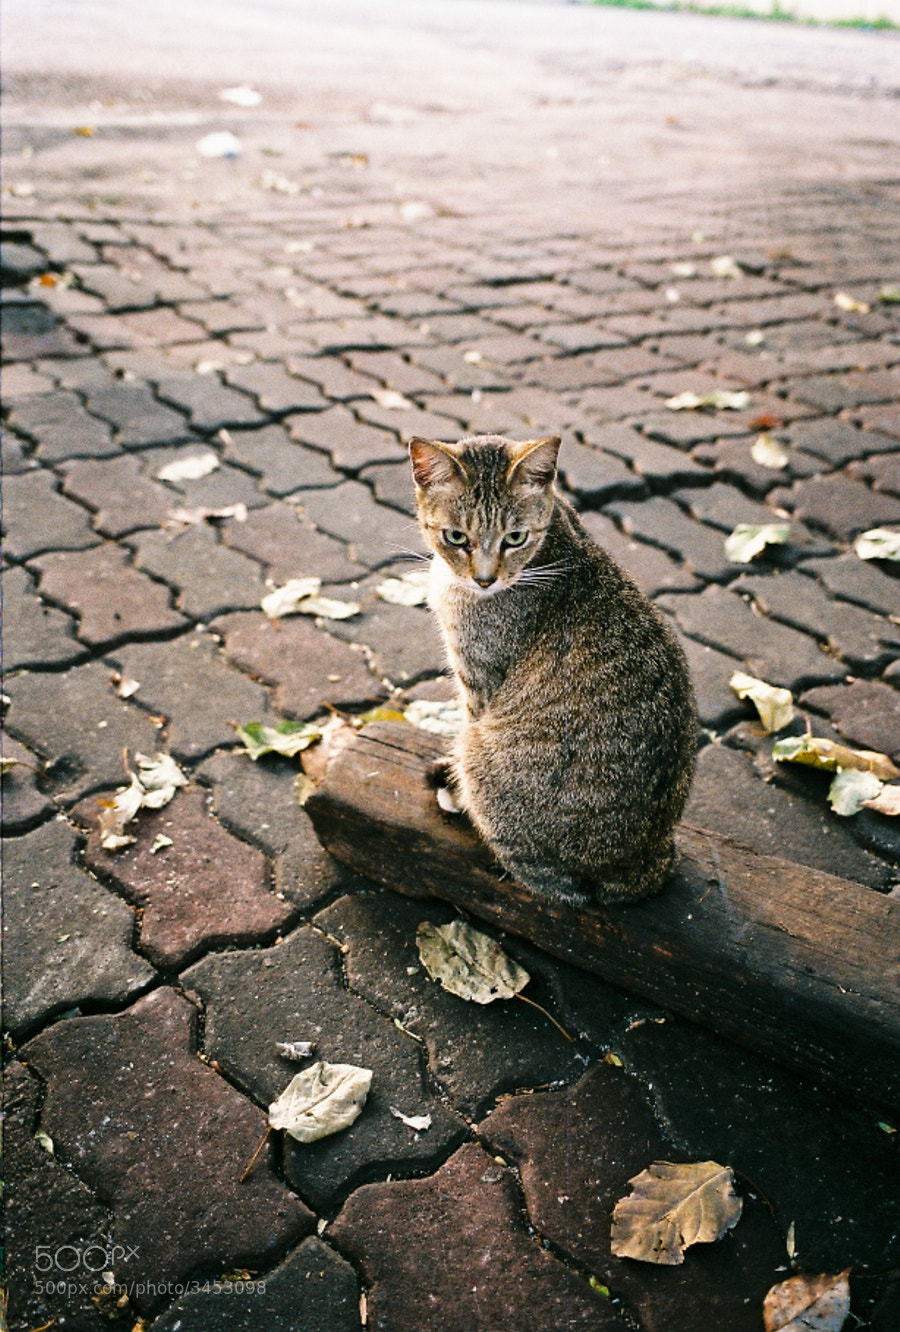 This stray cat looks very calm and alone on the street.